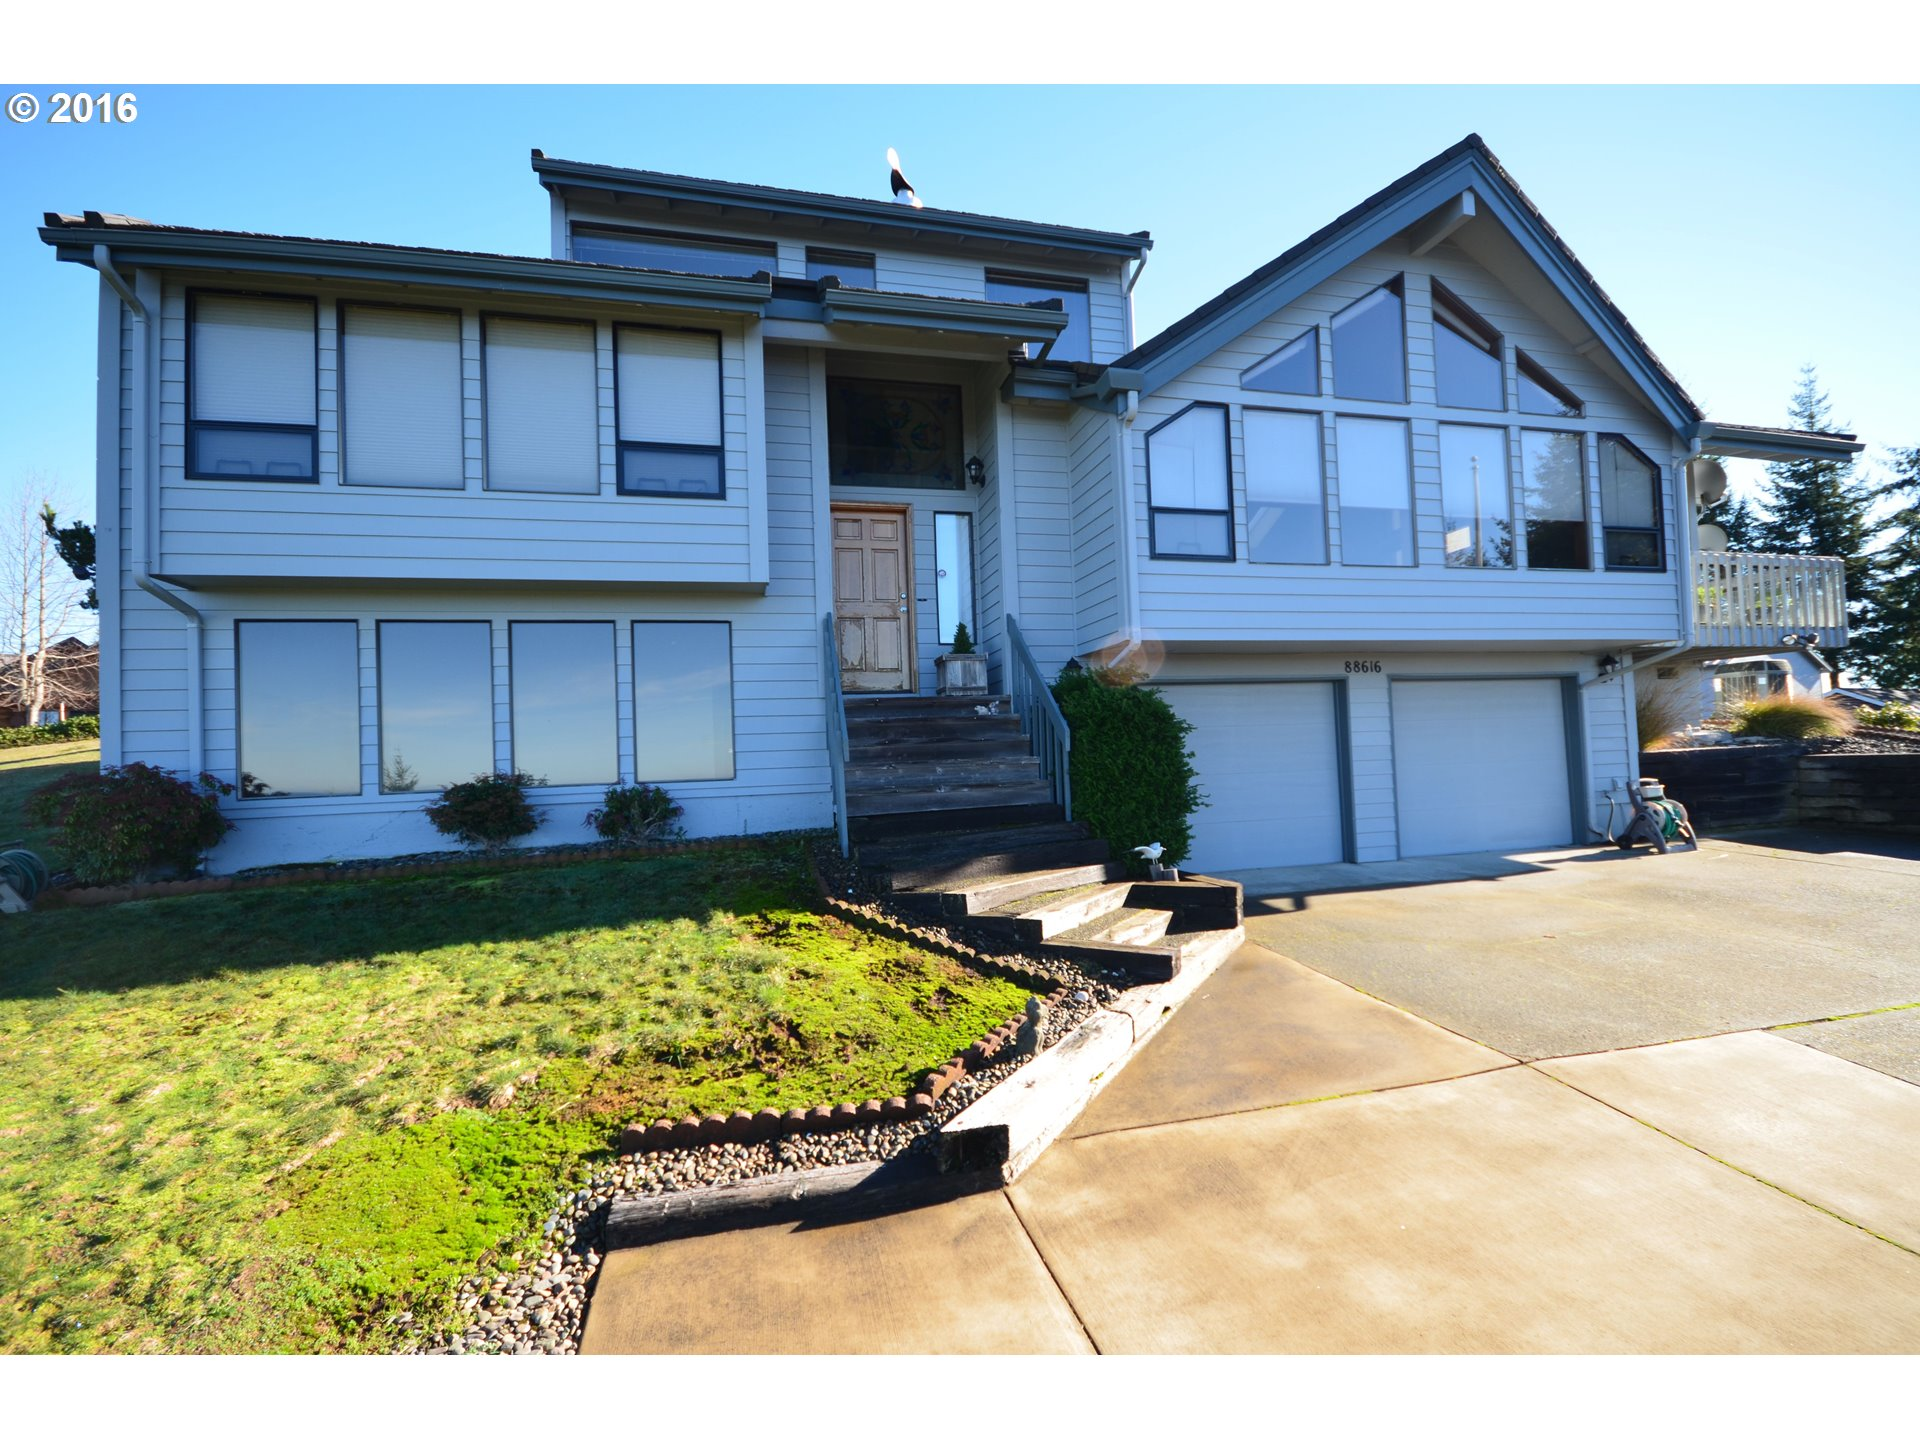 88616 Ocean View Ln, Florence, OR